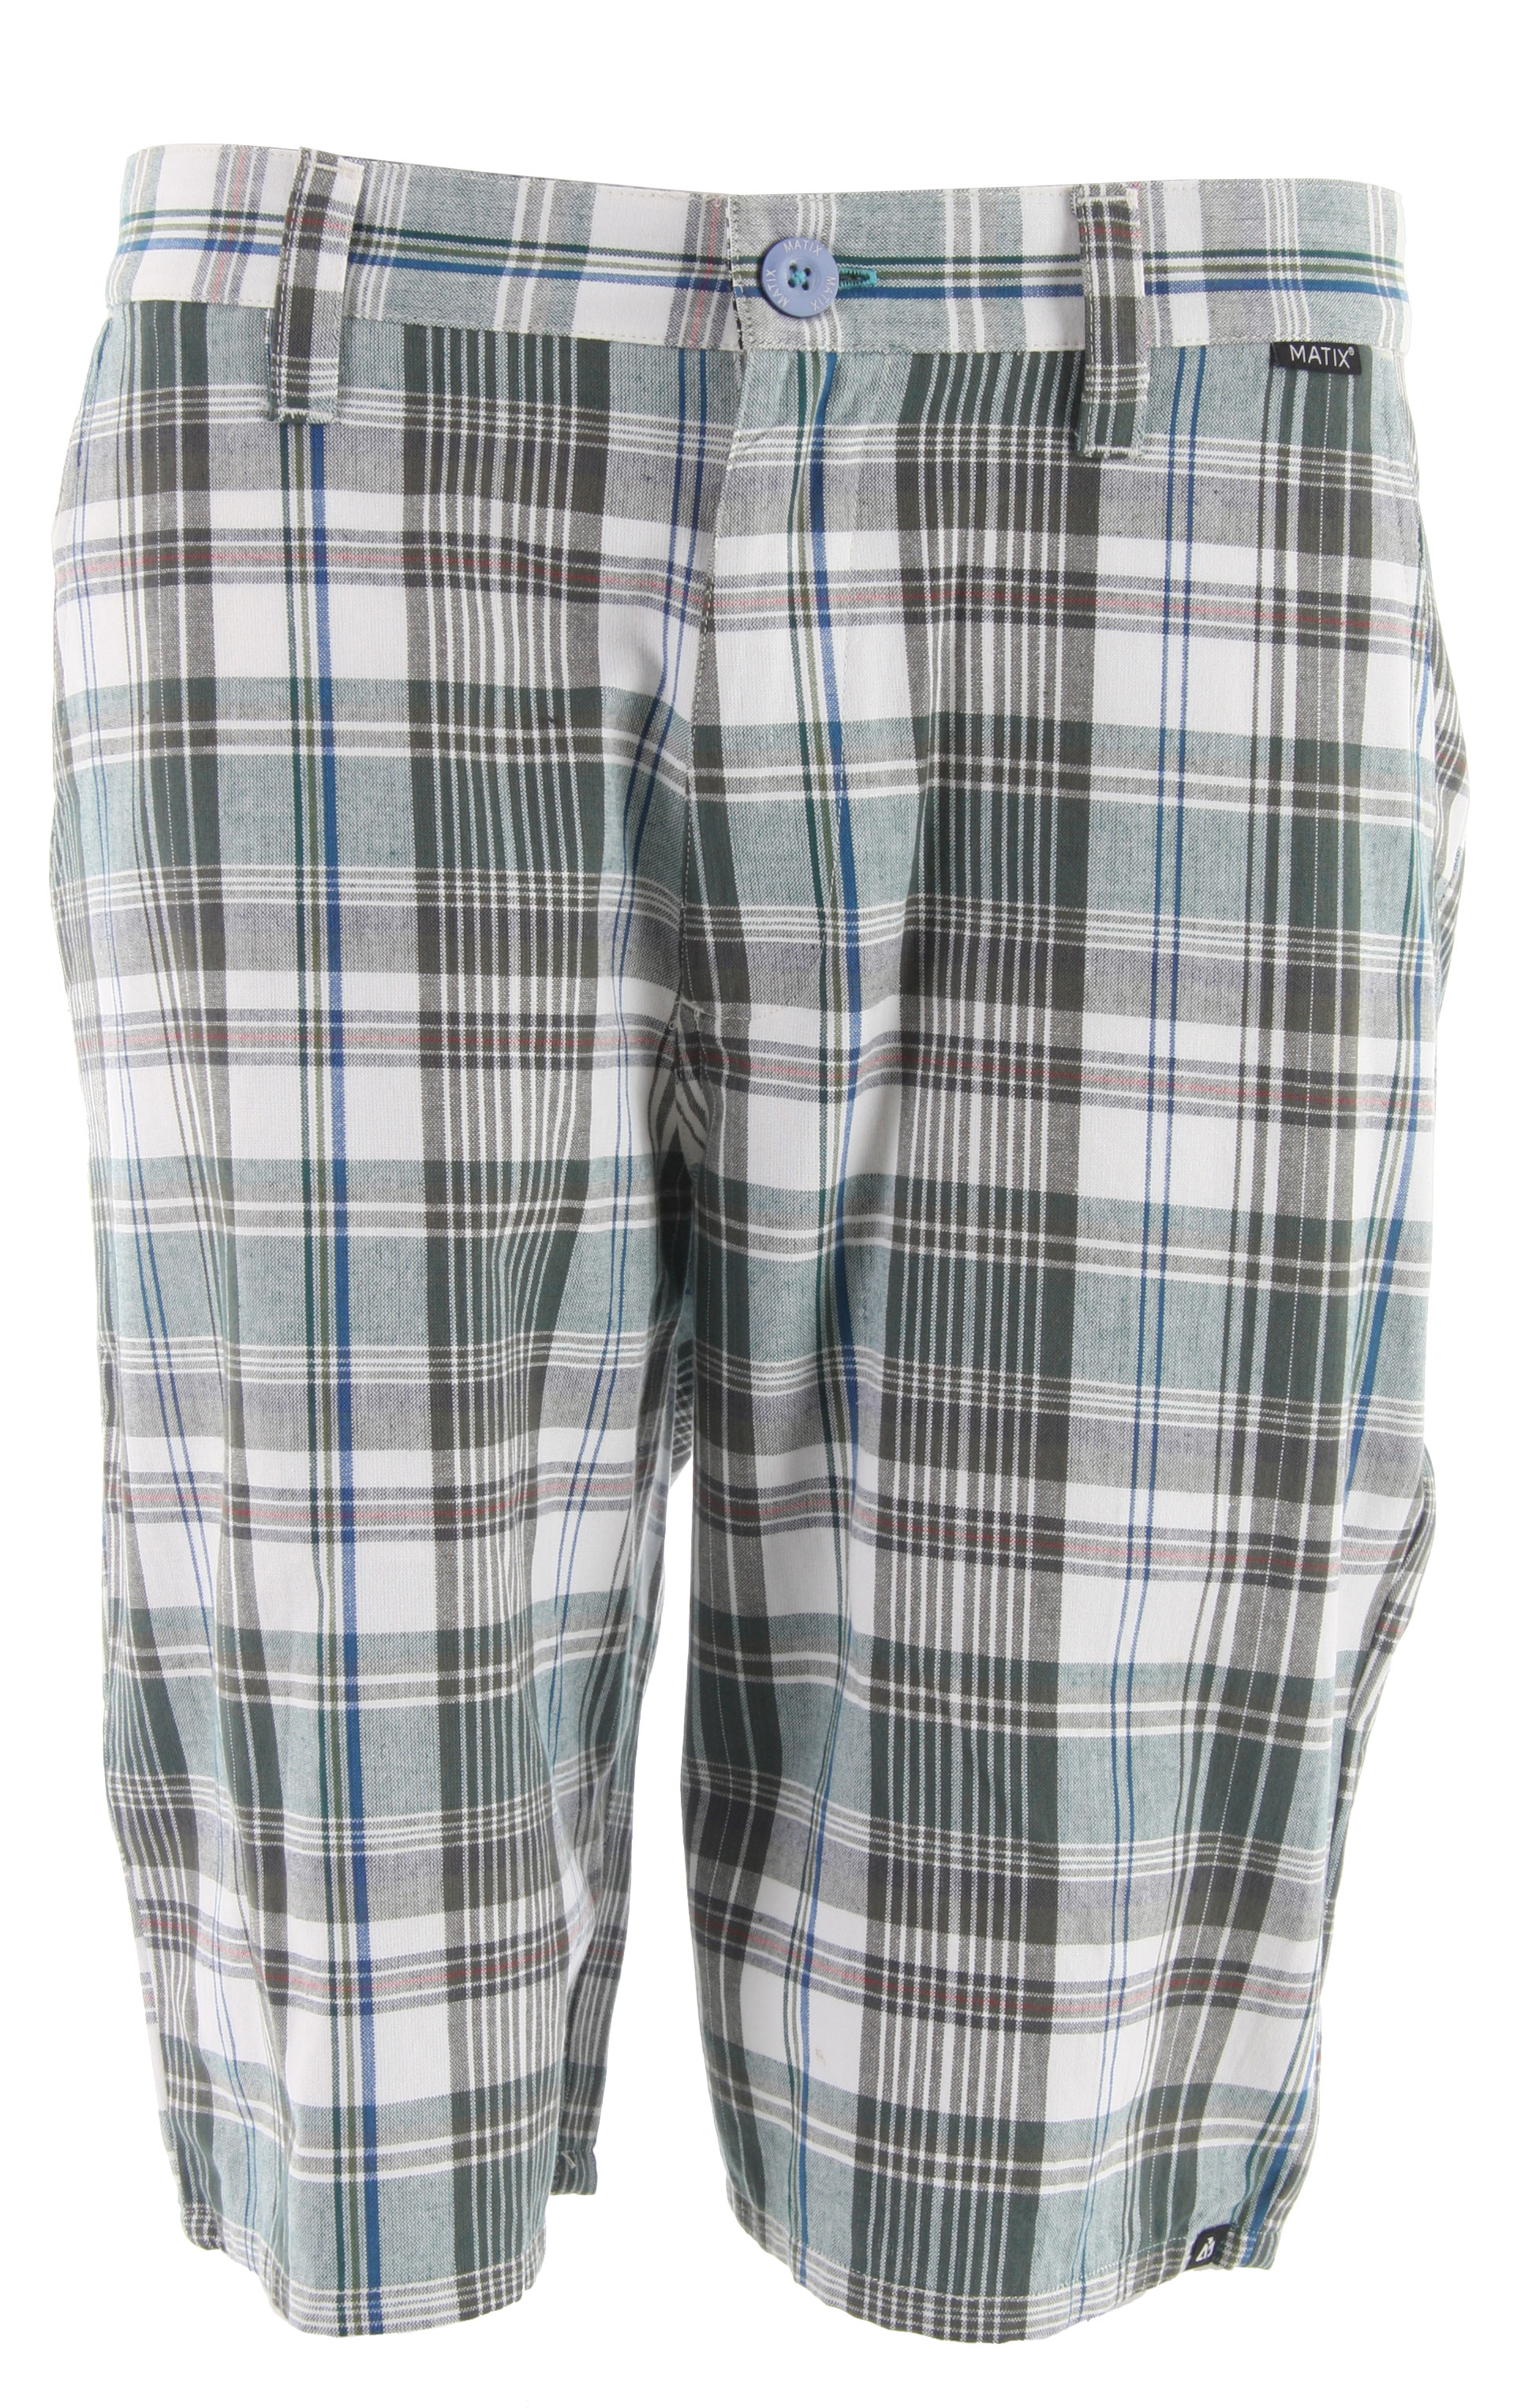 "Key Features of the Matix Kenningan Shorts: 100% Cotton Plaid Plaid short with front/back pockets cellphone pocket contrast inside waistband Matix labeling 22"" outseam for sz 32 - $29.95"